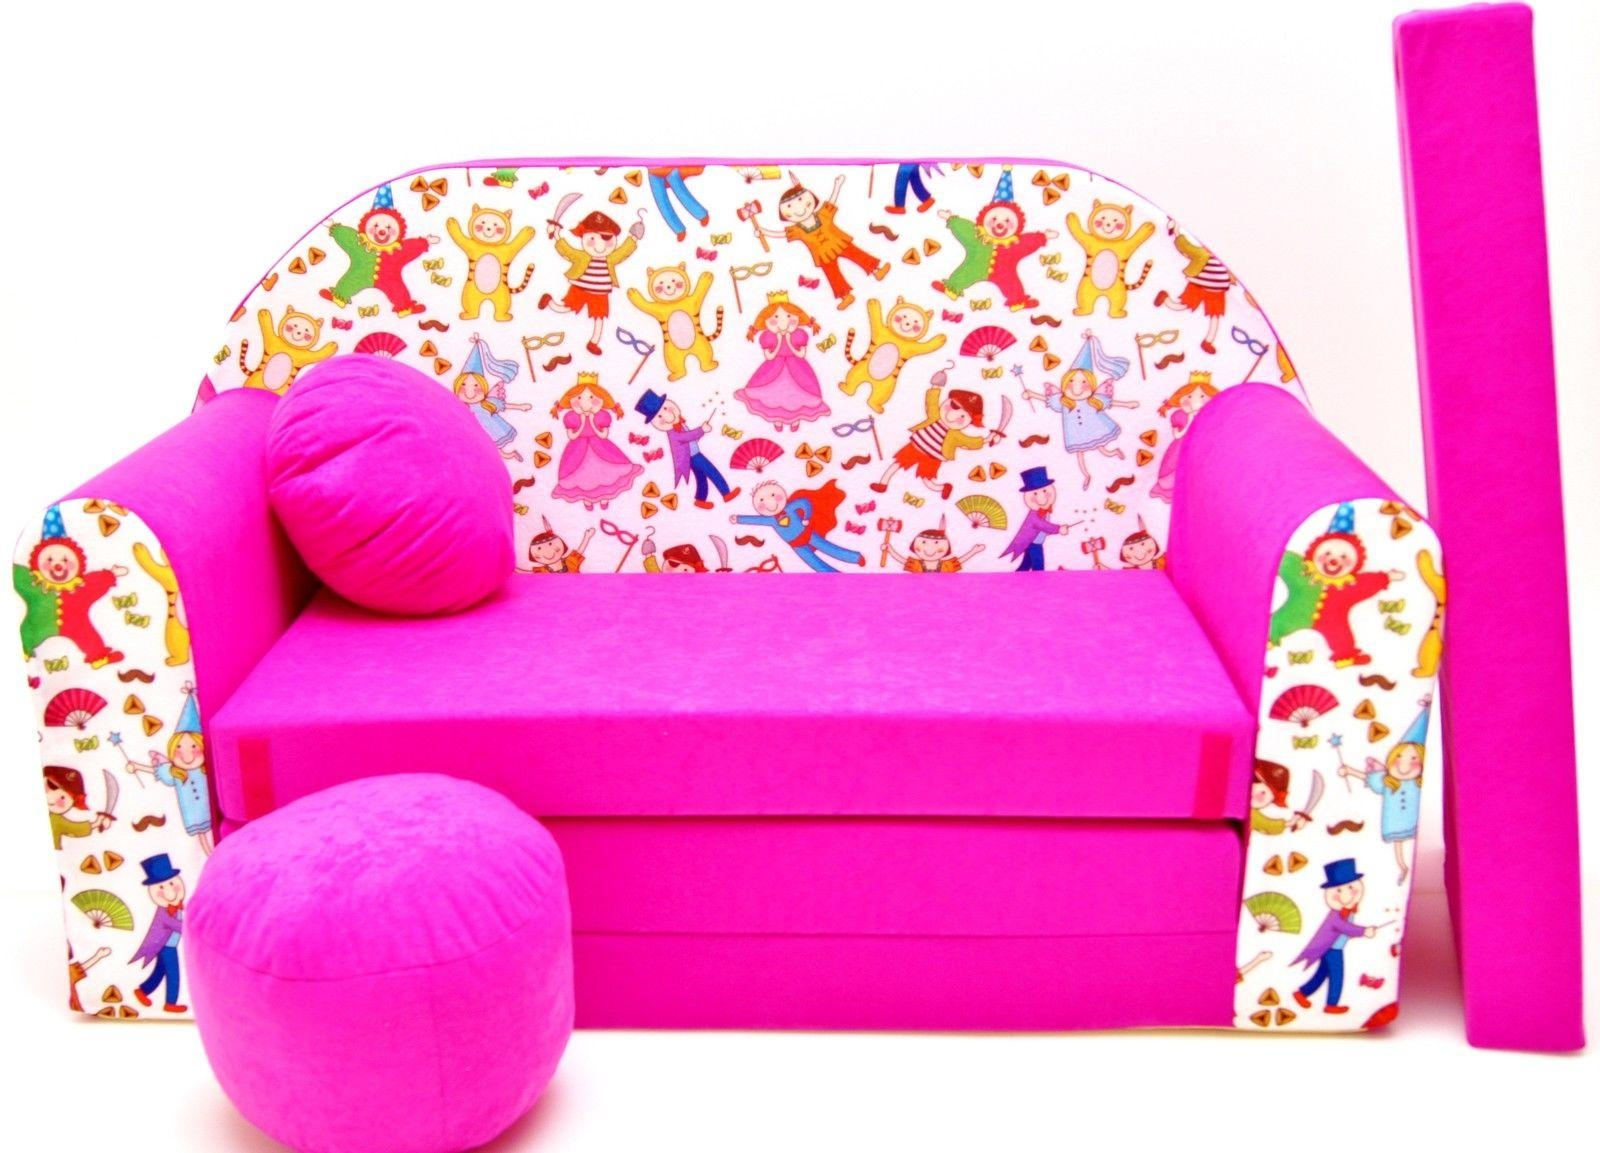 Childrens Sofa Bed, Fold Out Sofa Bed + Free Pillow And Pouffe Intended For Footstool Pouffe Sofa Folding Bed (Image 4 of 20)